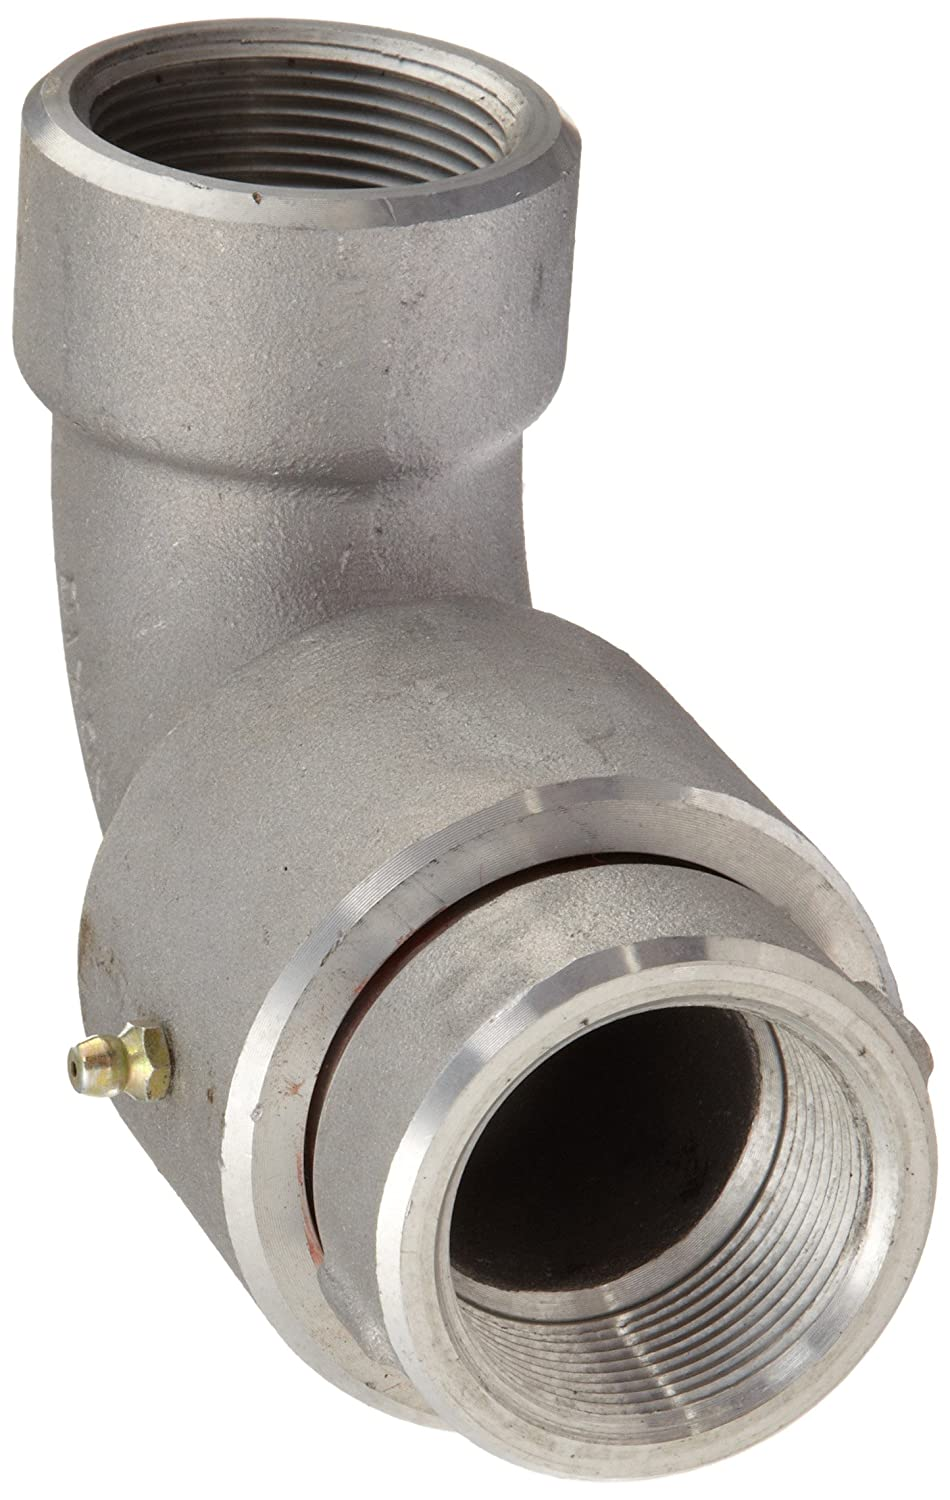 E-JOINT 5025138505000 Full Swivel Joint with Fastpin E-JOINT EAN Spinlock